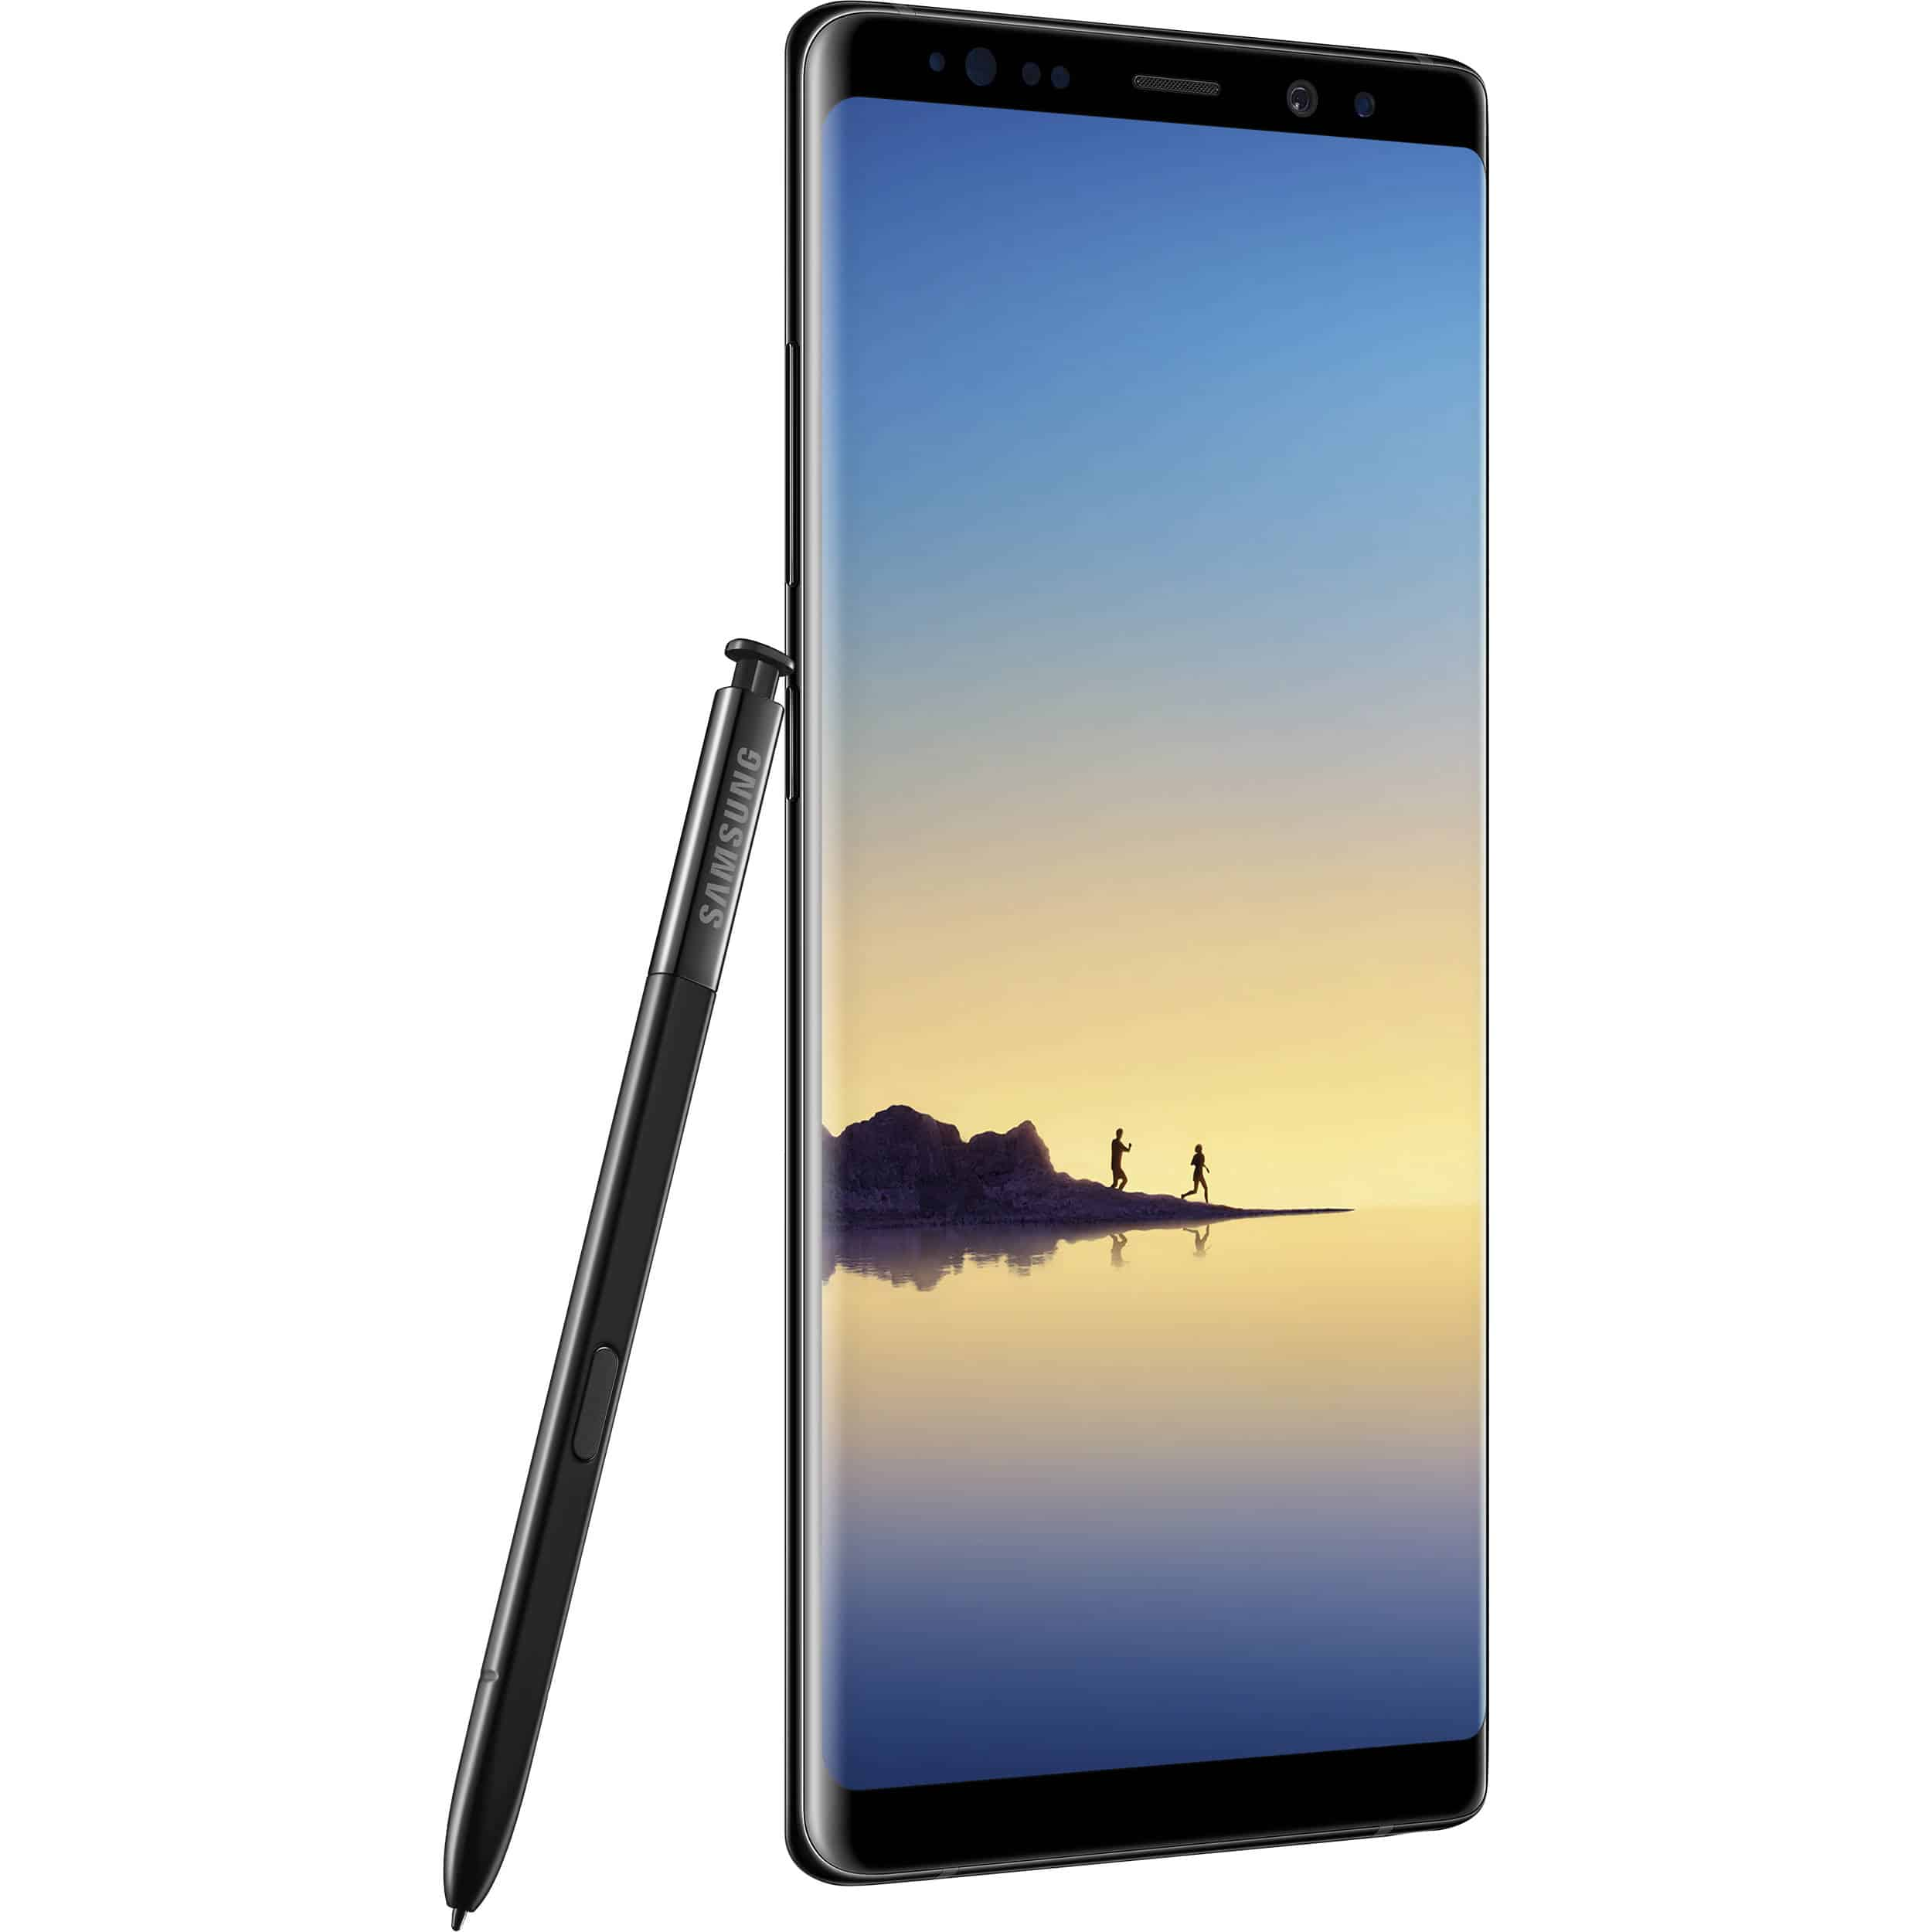 Samsung Galaxy Note 8 a 399€ con TIM